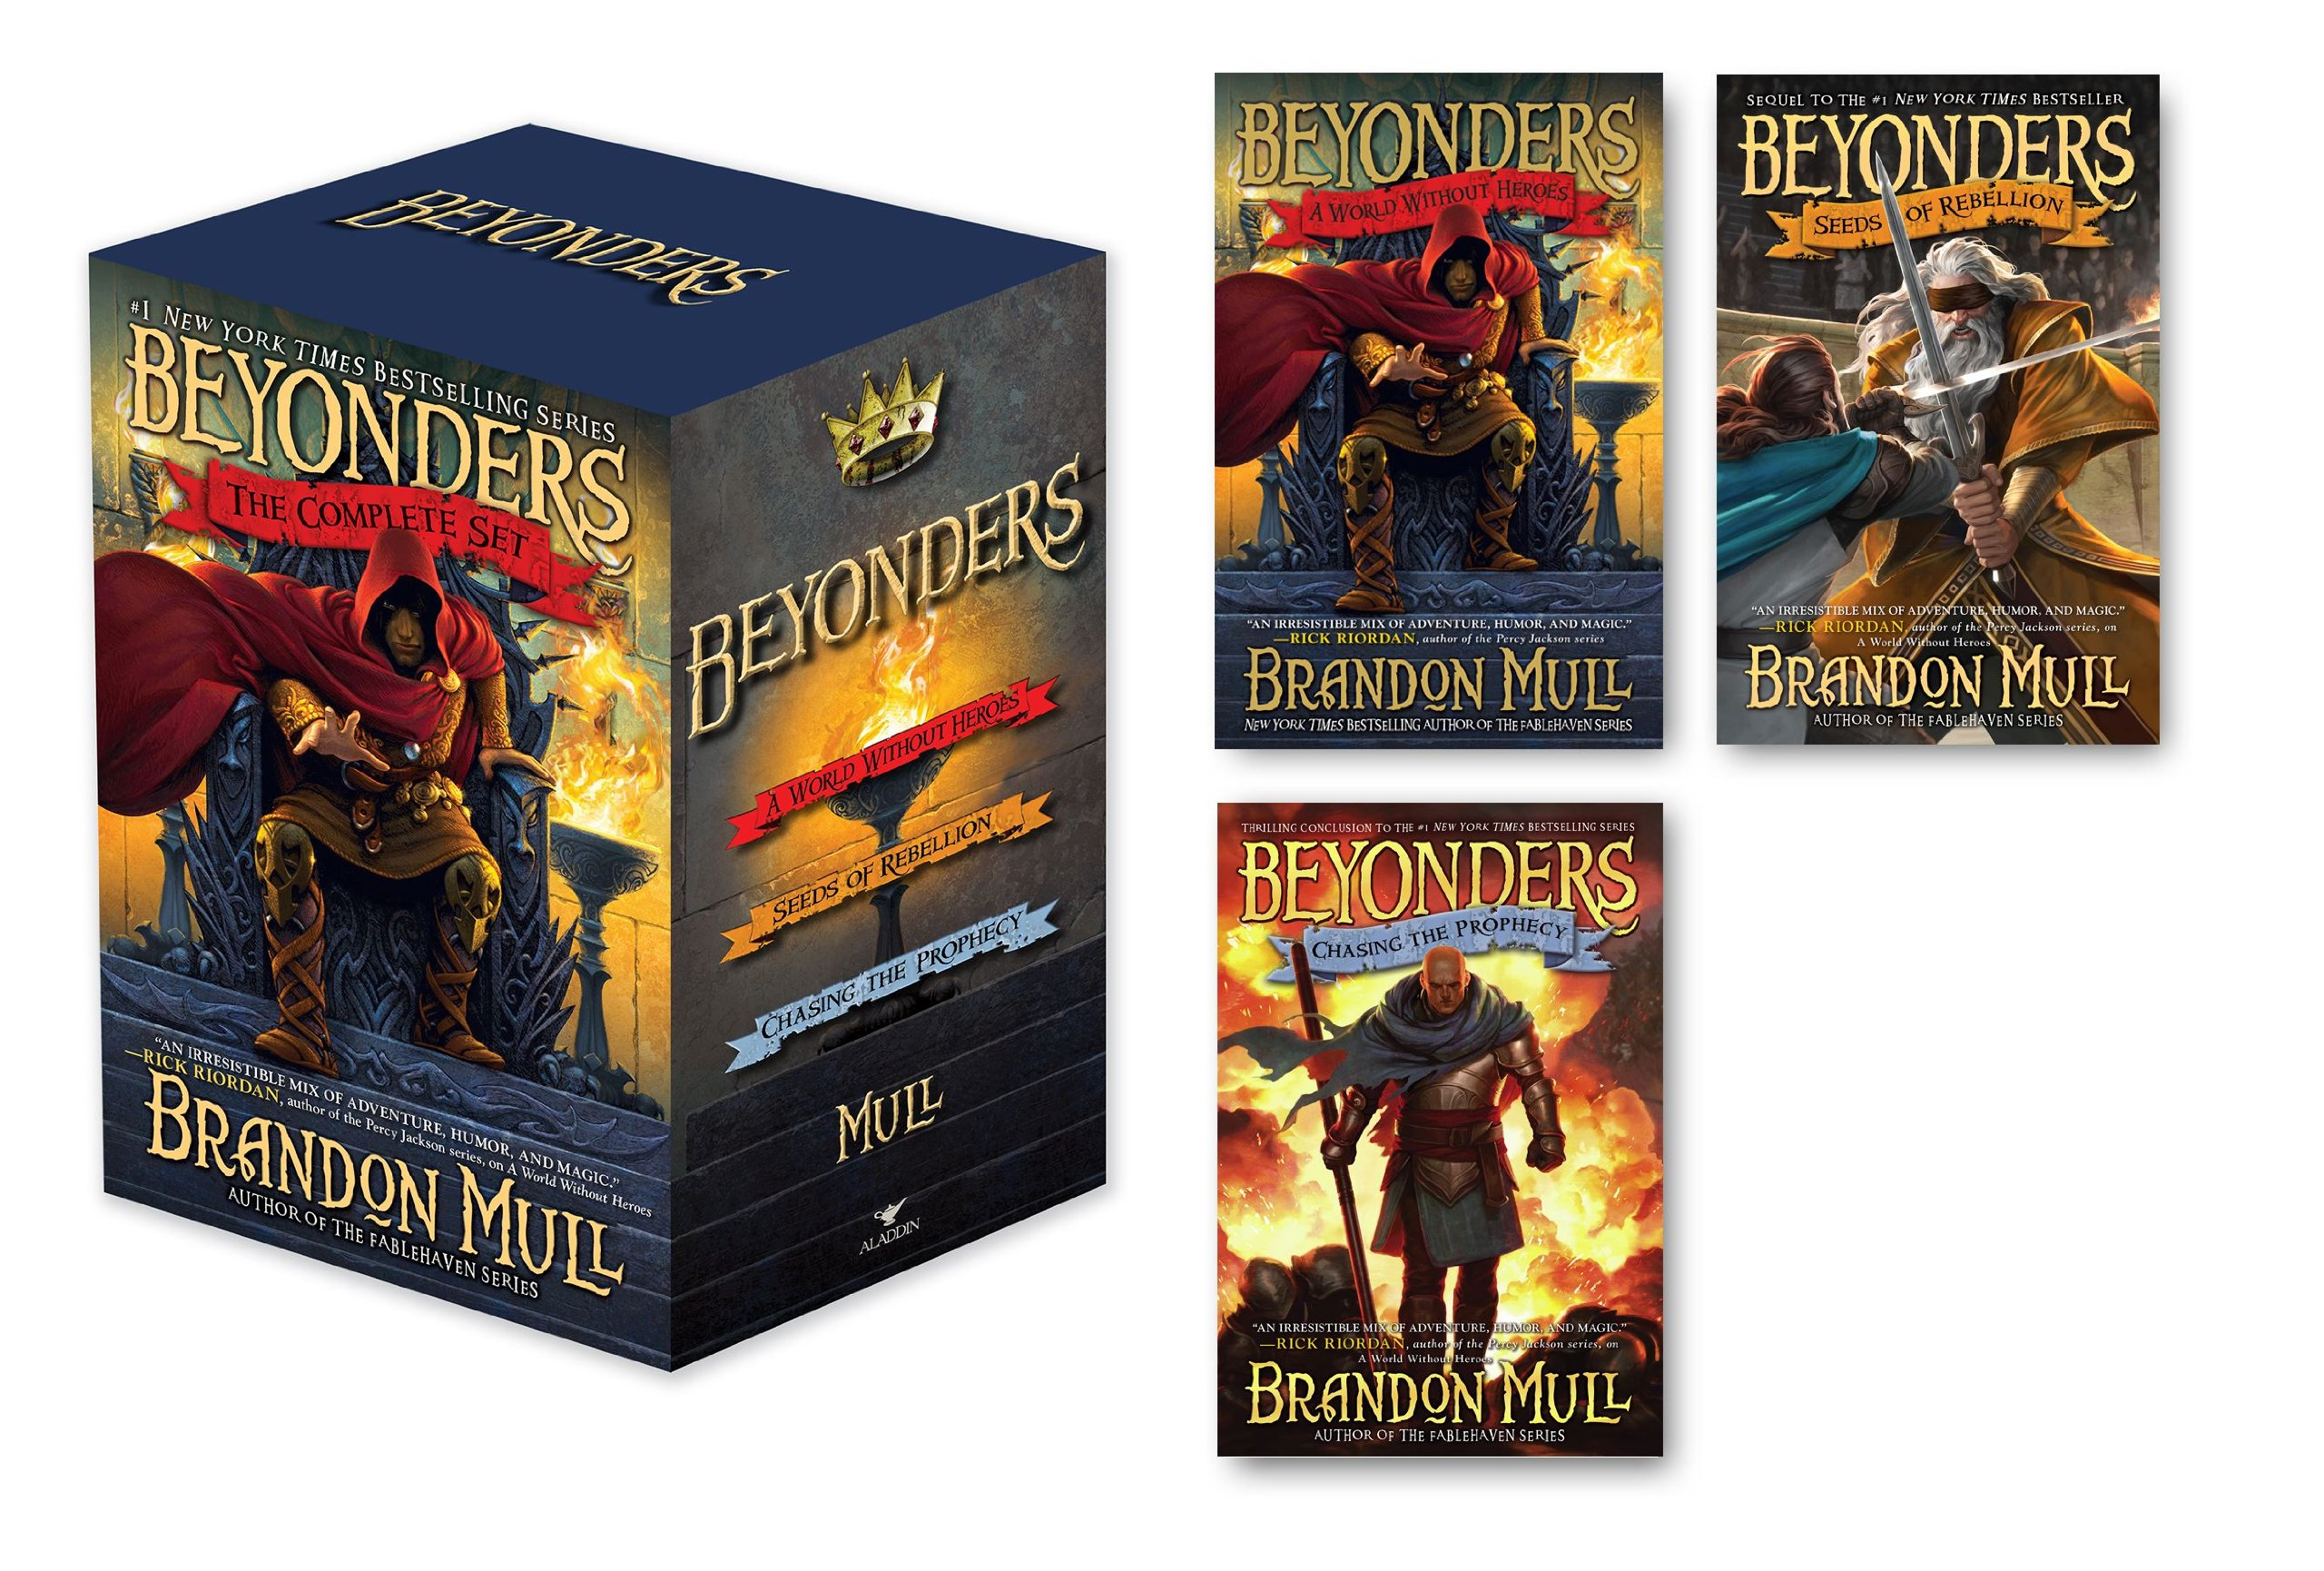 A World Without Heroes (Beyonders, Book 1)